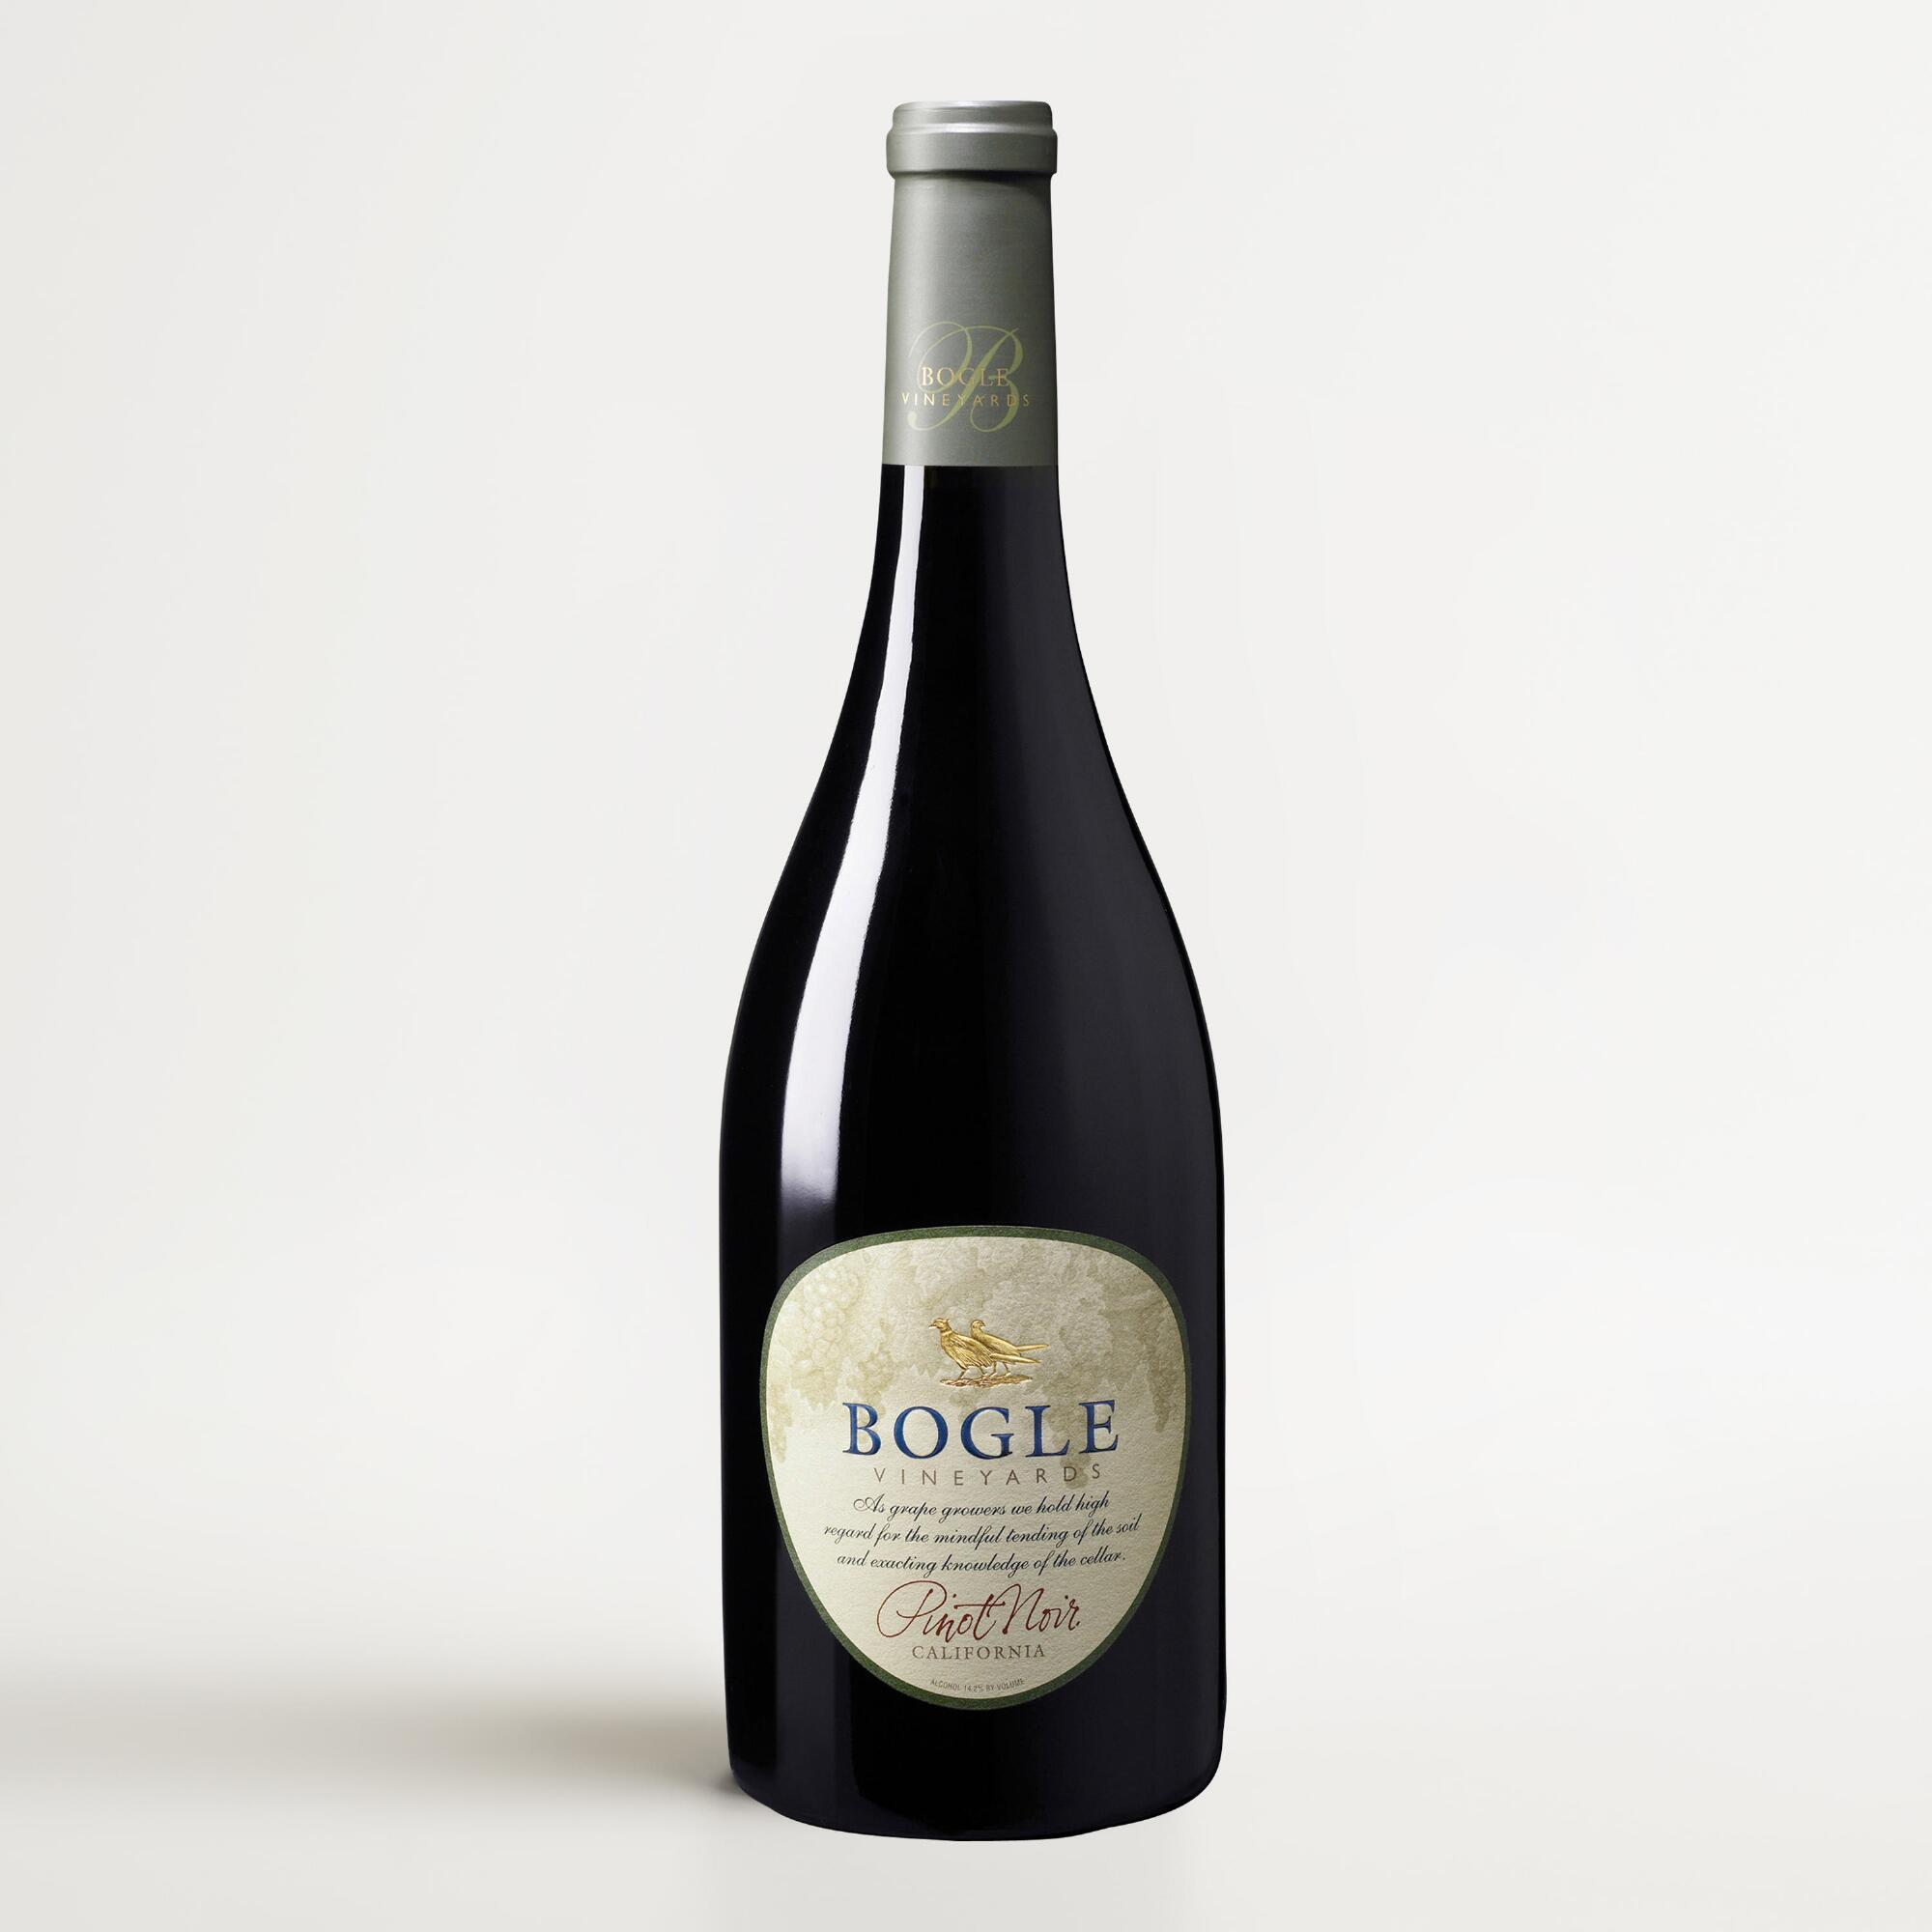 Bogle pinot noir world market for Best pinot noir in the world